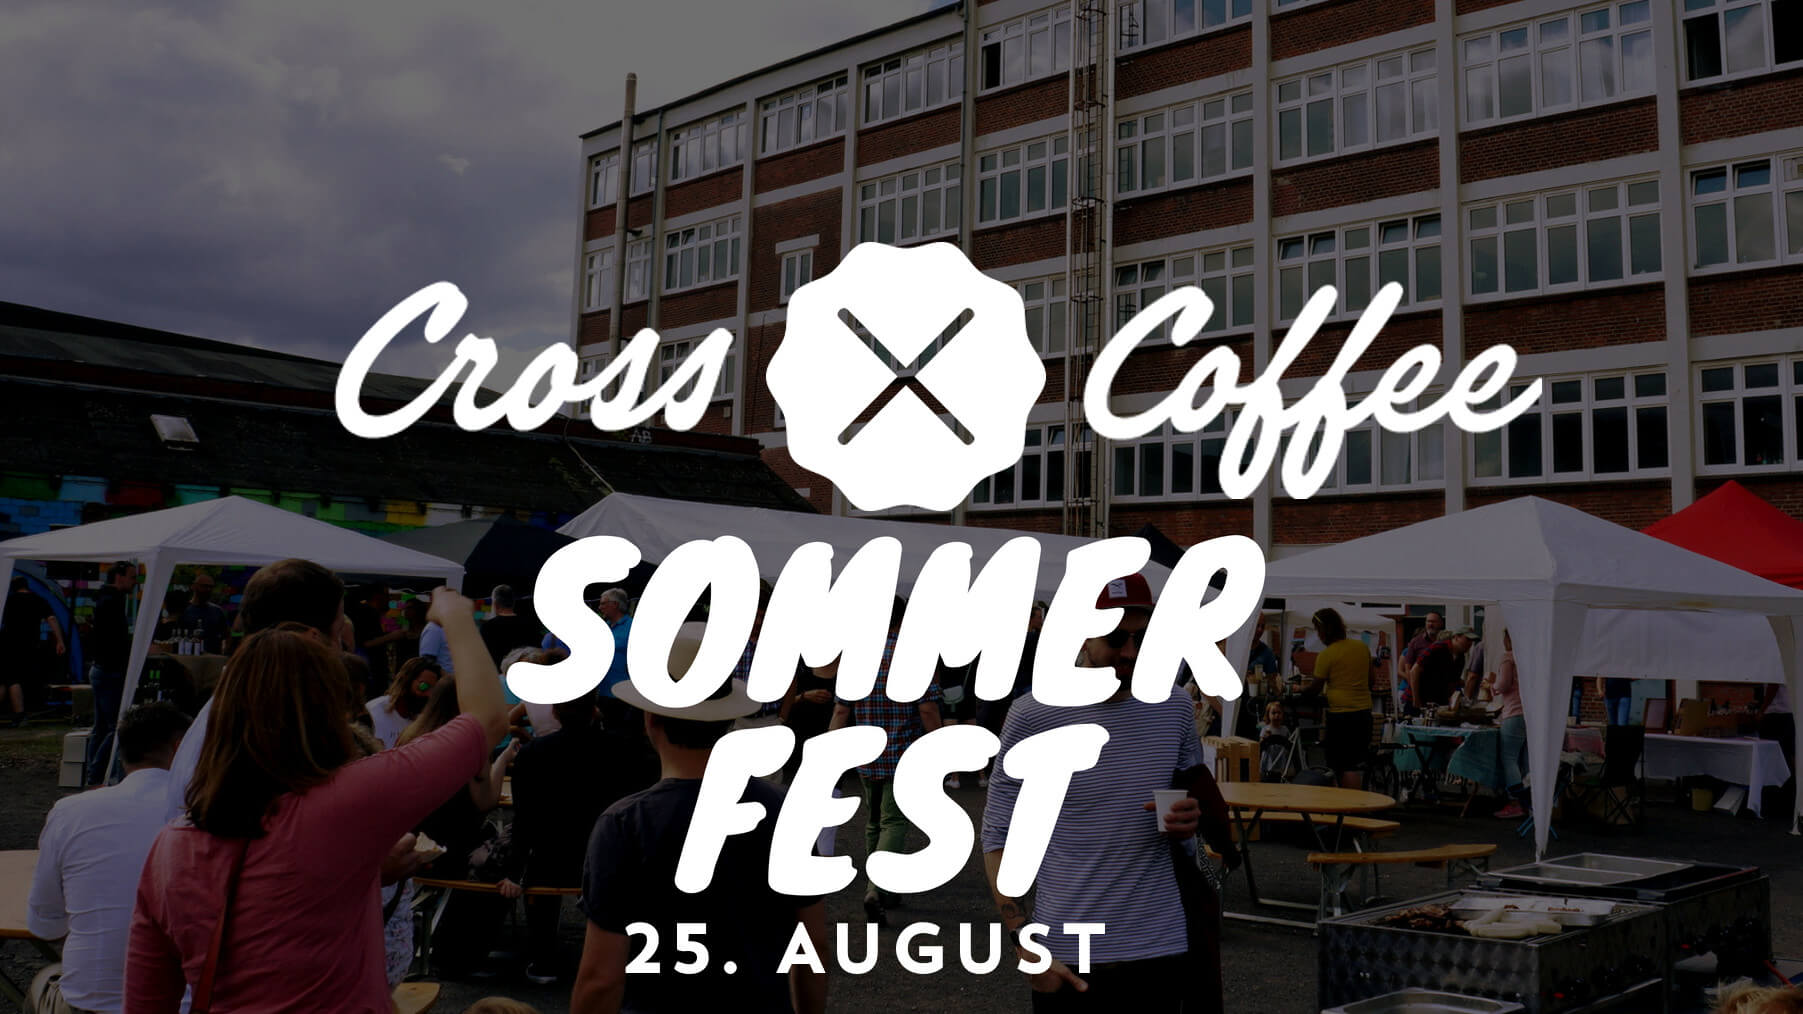 Cross Coffee Sommerfest am 25.August 2018 in der Rösterei: Save-the-Date